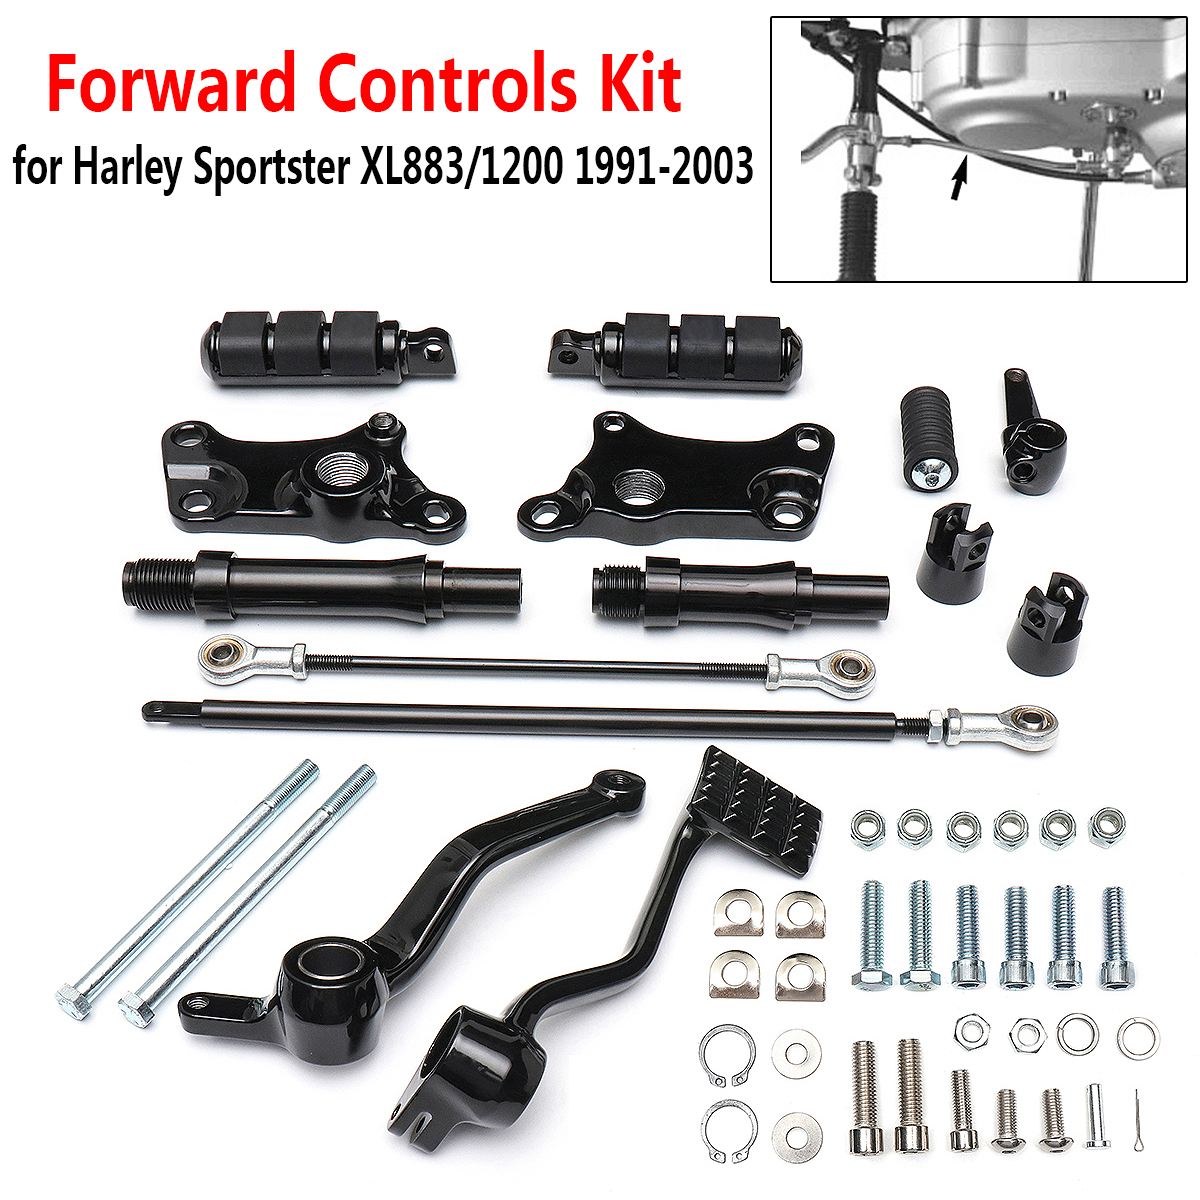 Black Foot Pegs Forward Controls Complete Kit For Harley Sportster XL883 XL1200 1991-2003